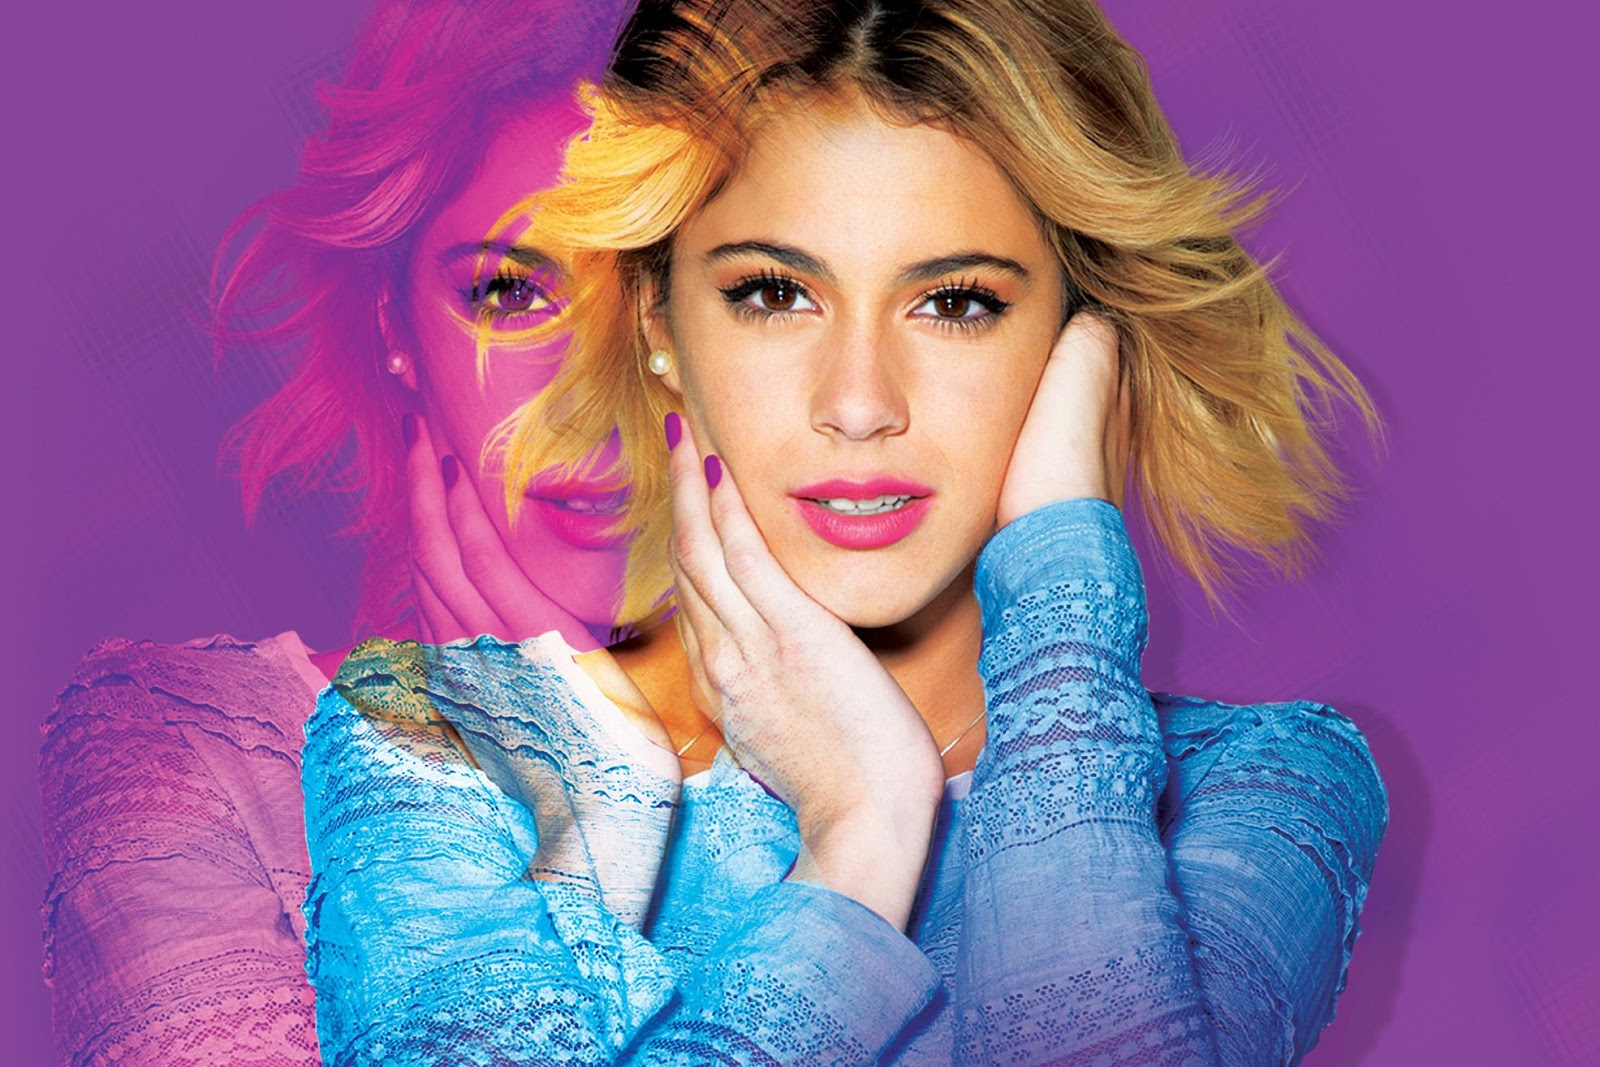 Disney Channel: Imagenes de Violetta